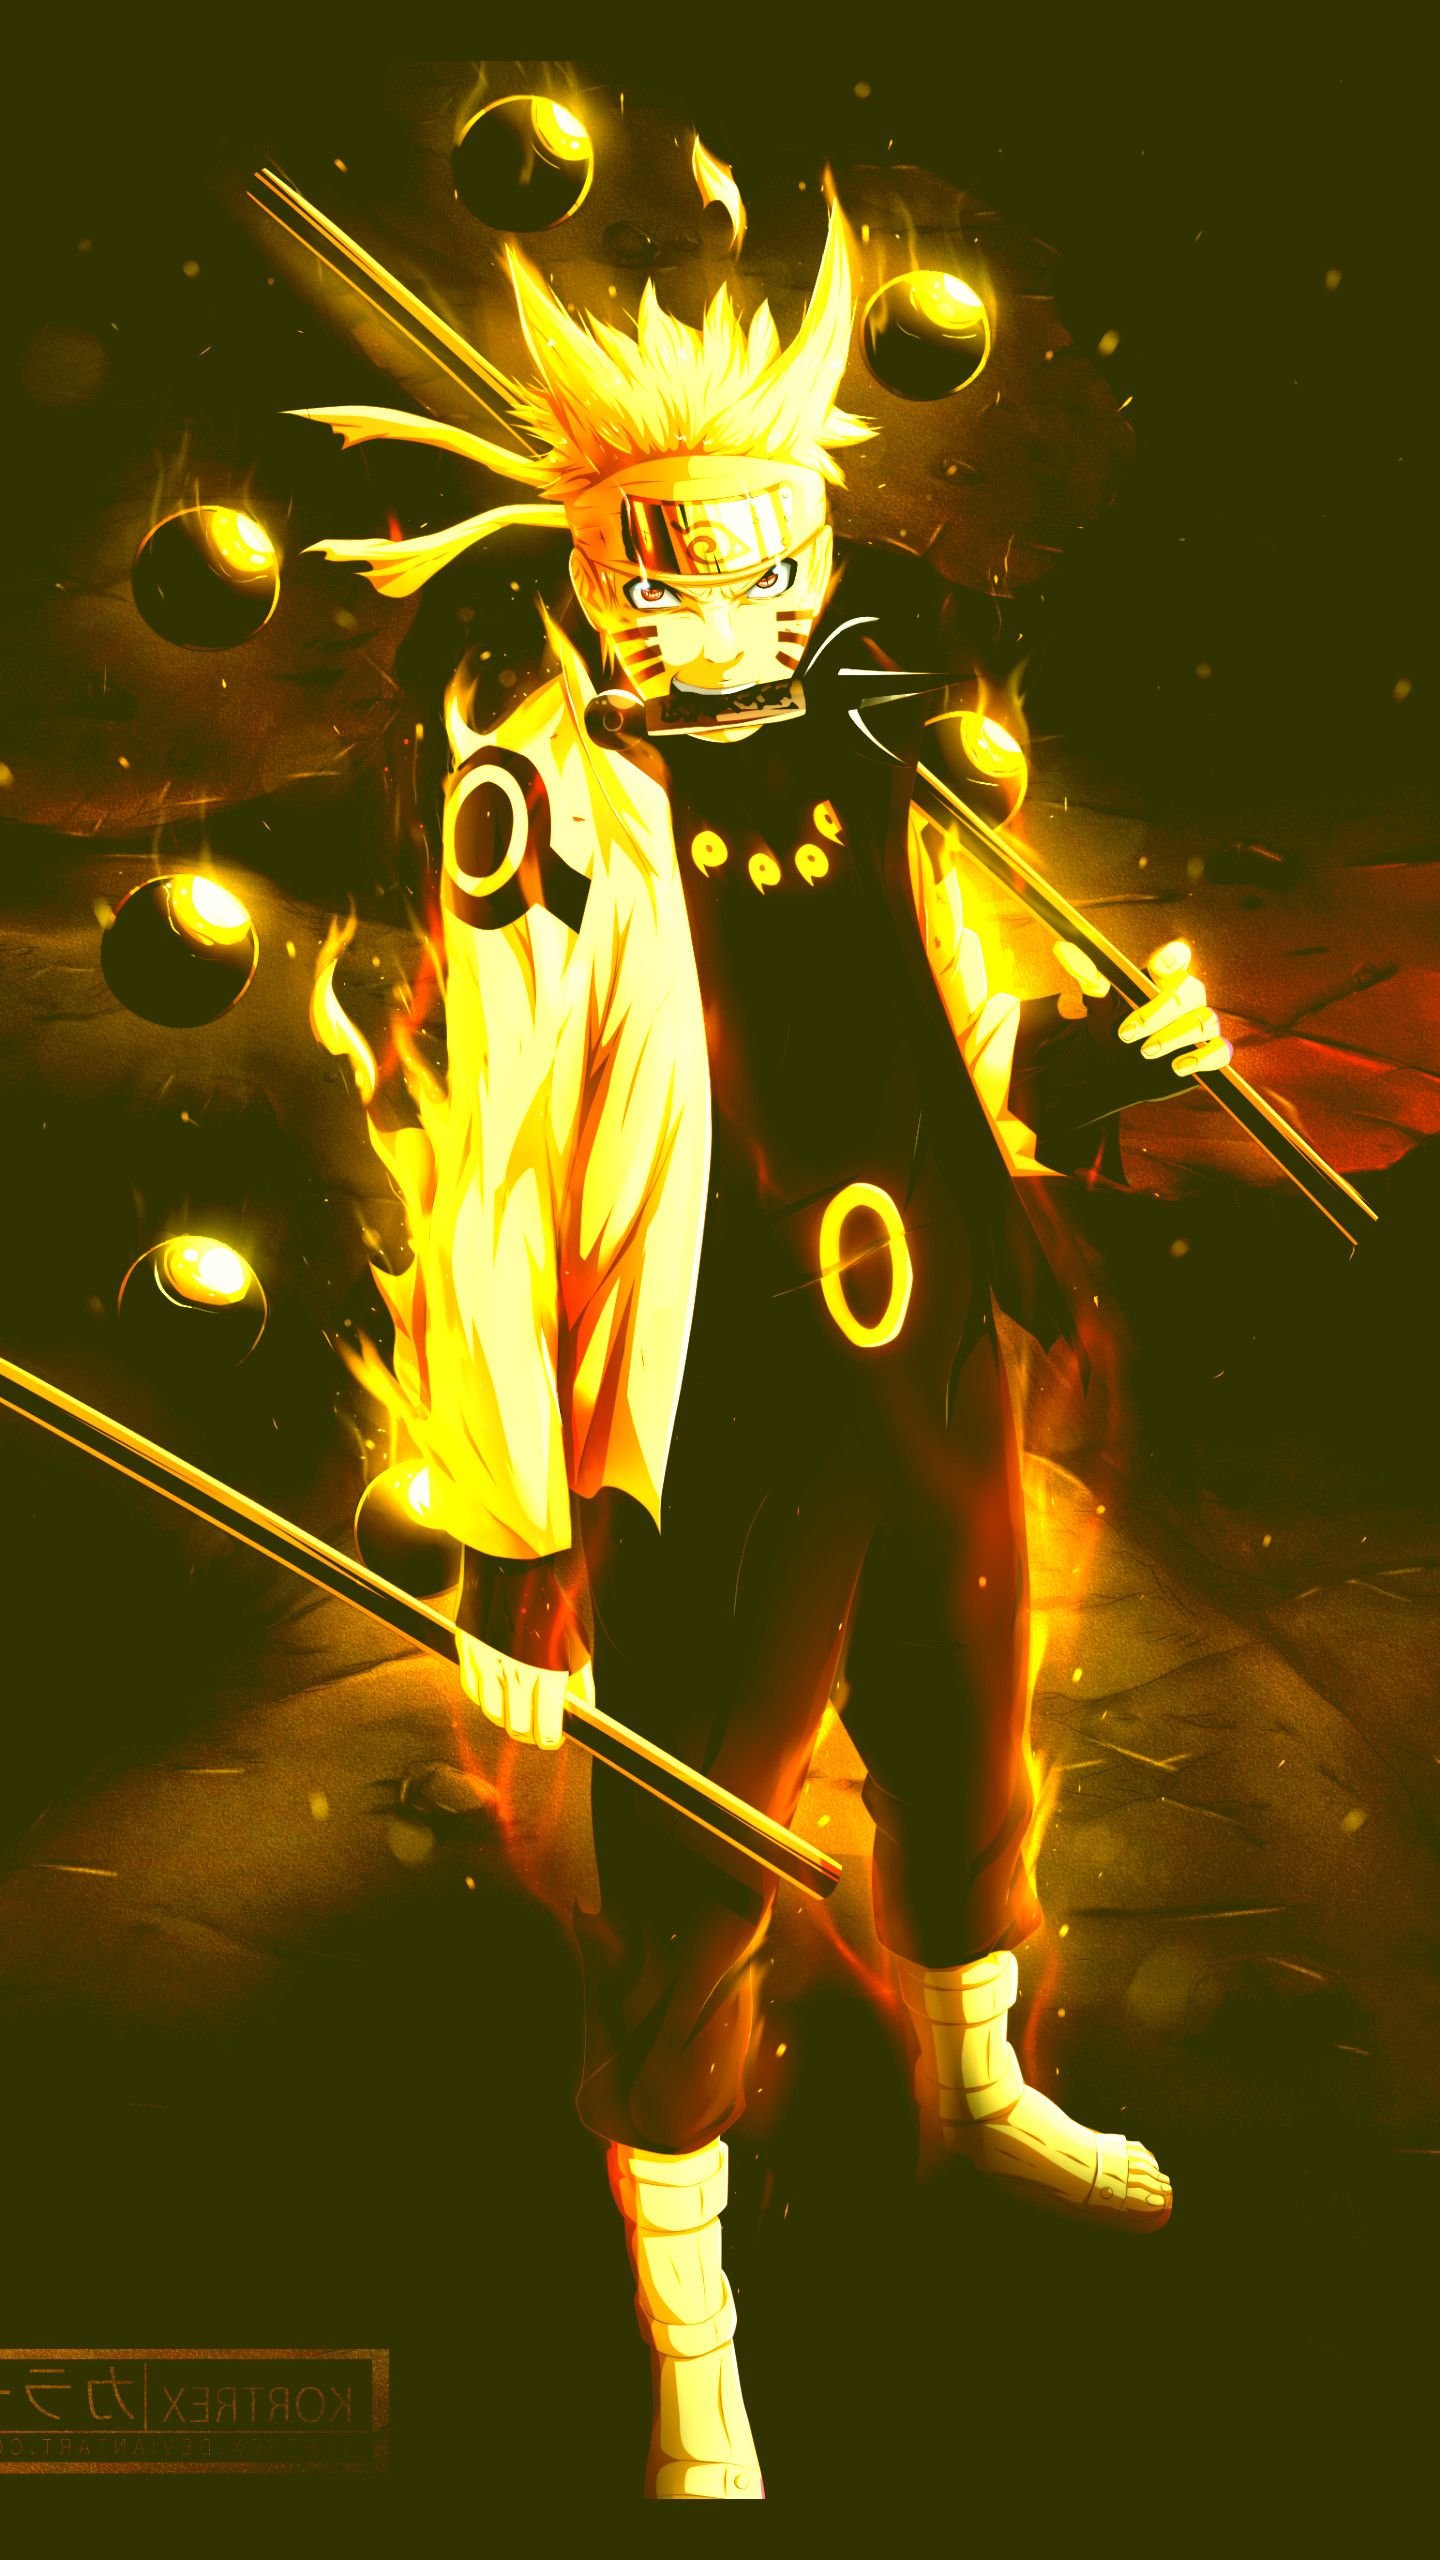 Naruto Iphone Wallpapers Top Free Naruto Iphone Backgrounds Wallpaperaccess